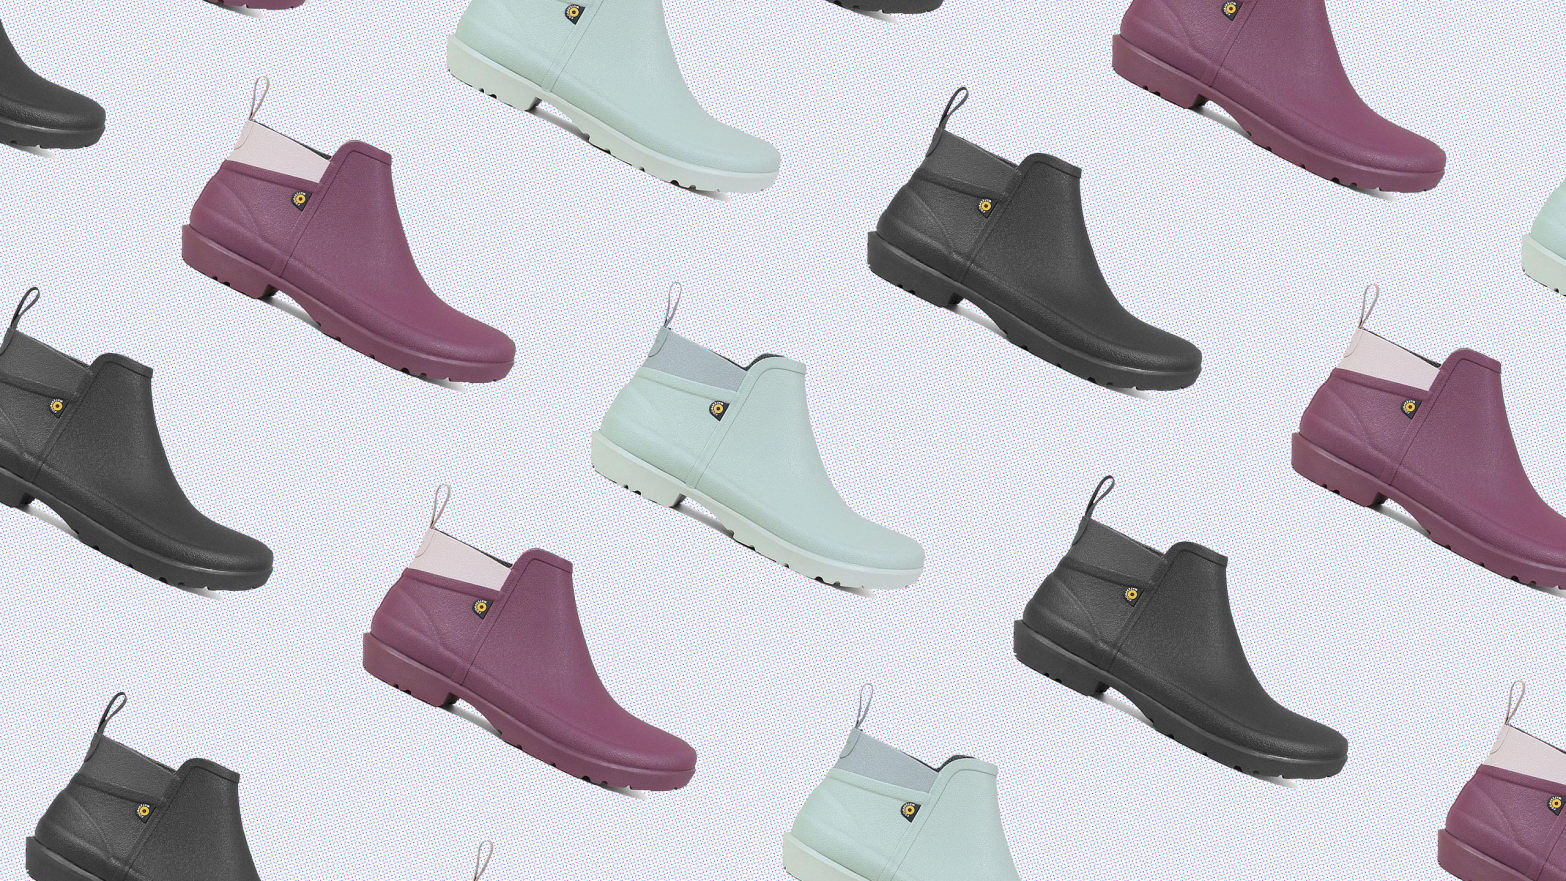 Lightweight Rain Boots from BOGS, Tetron, Tote, and More